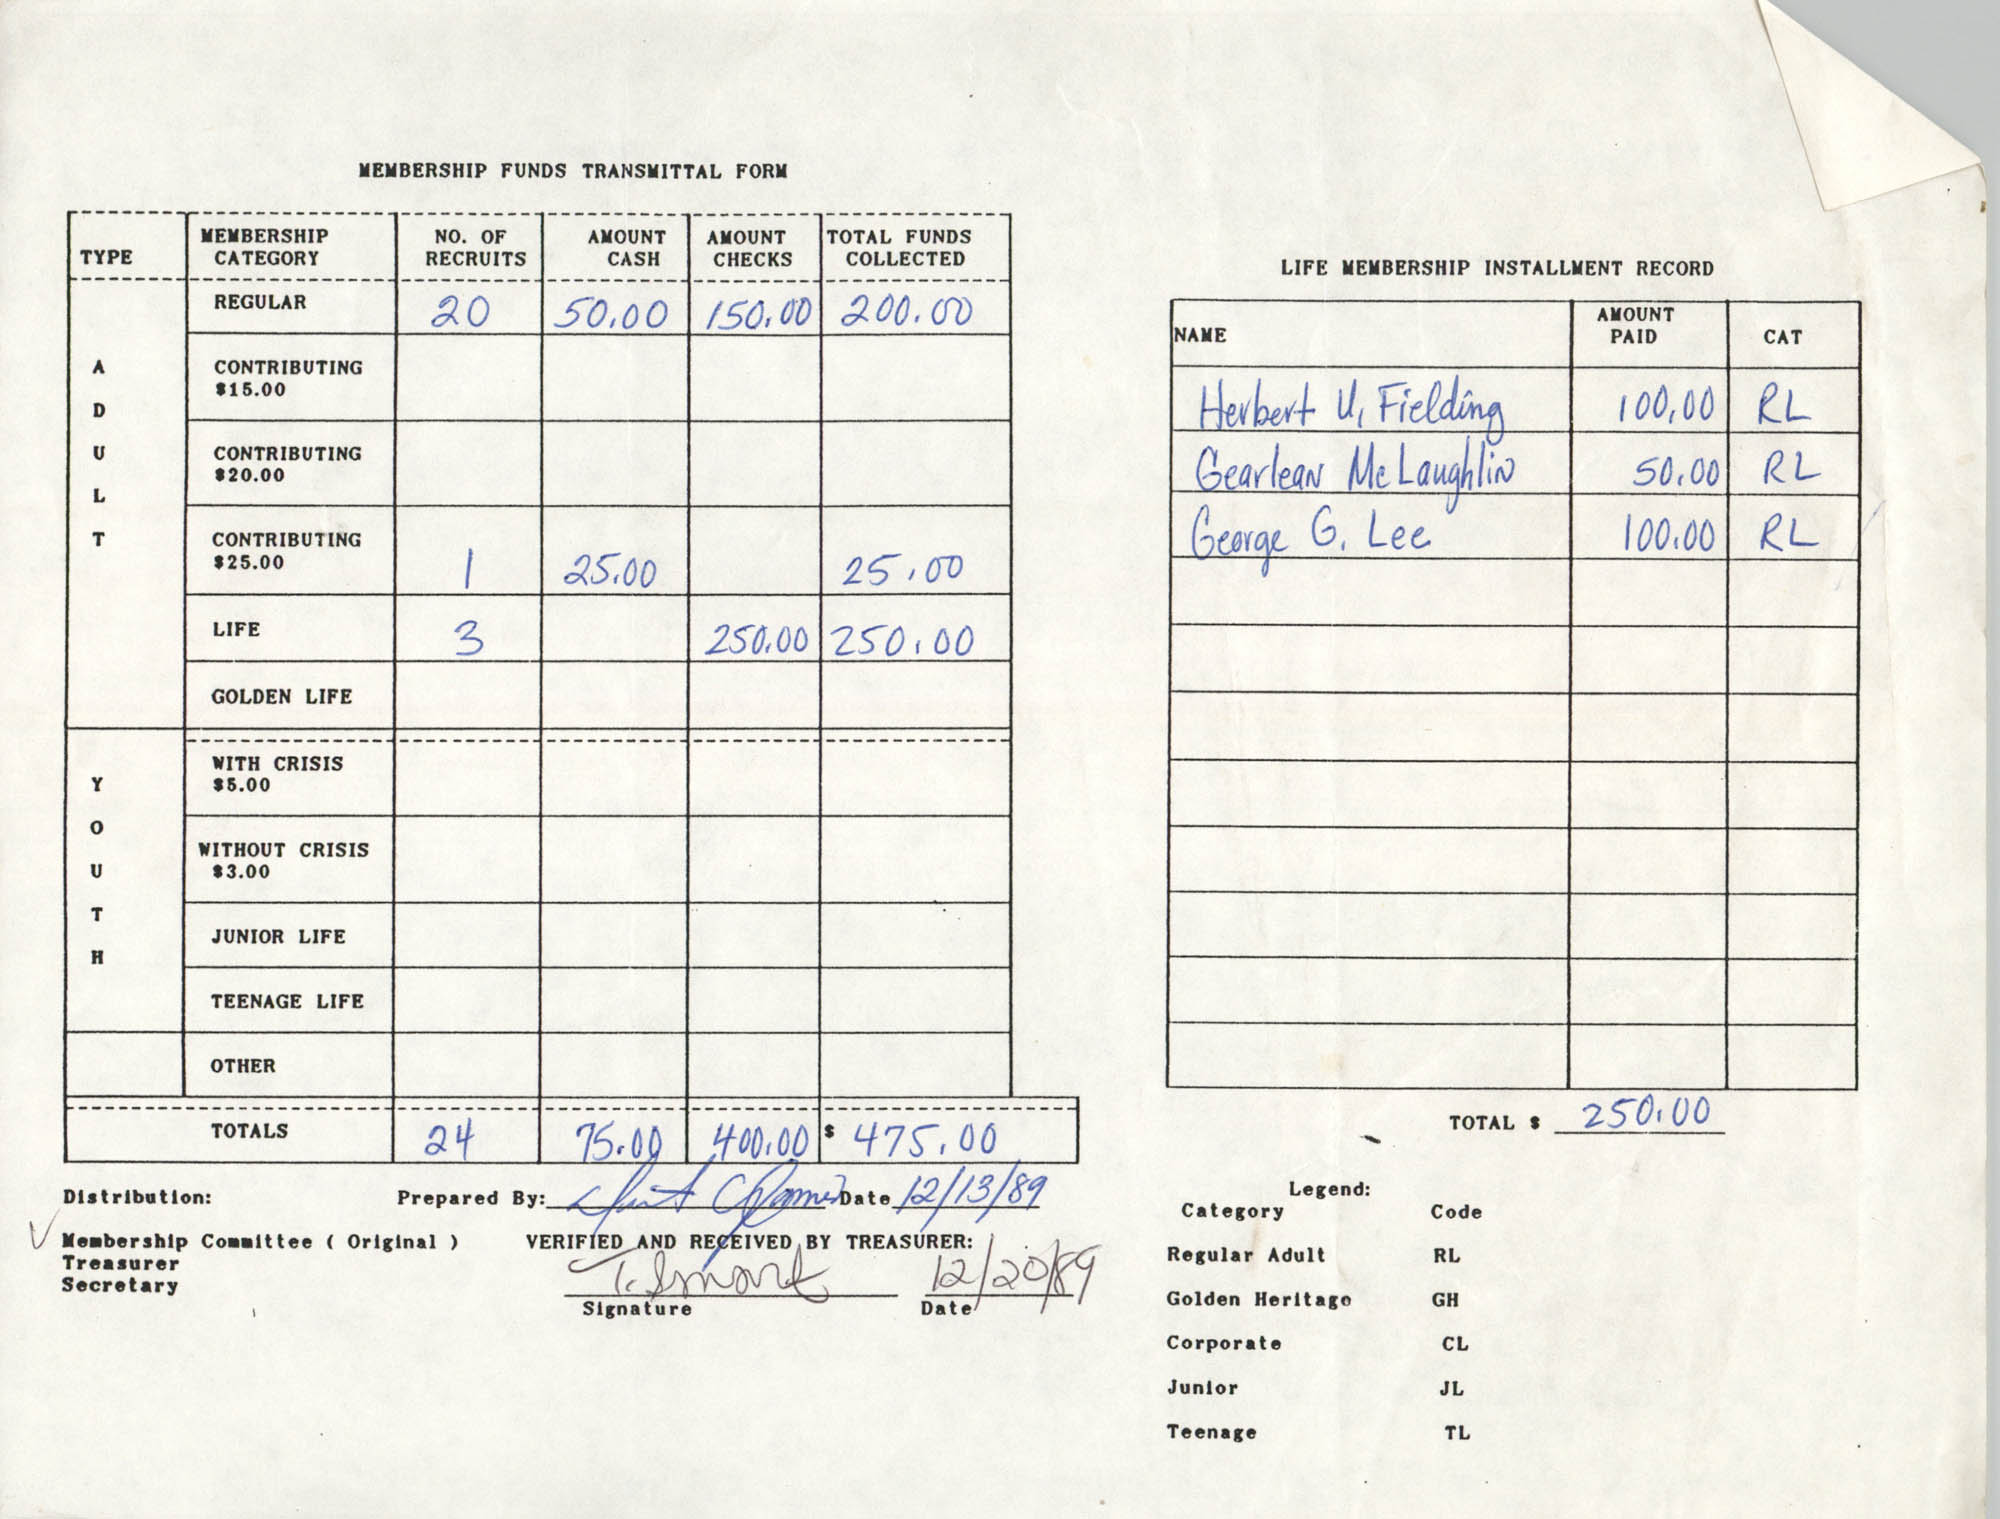 Charleston Branch of the NAACP Funds Transmittal Forms, December 1989, Page 3